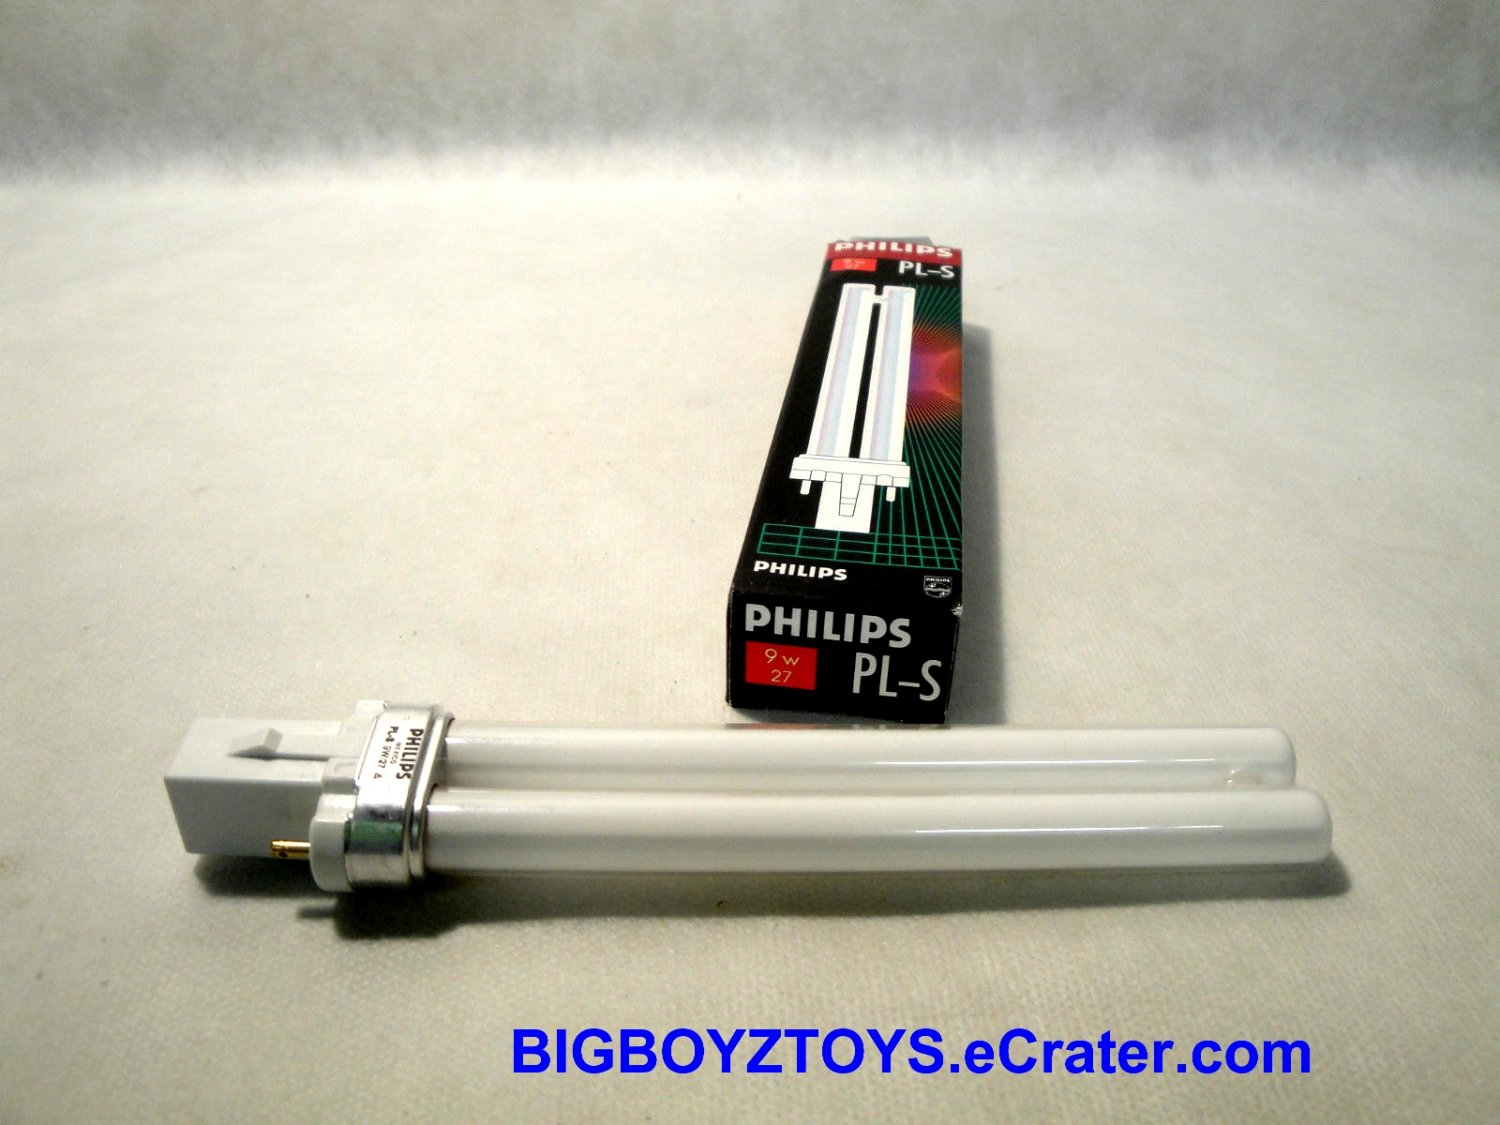 Philips PL-S 9w27 CFL Compact Fluorescent Light Bulb~Lamp~2 Pin~NIB